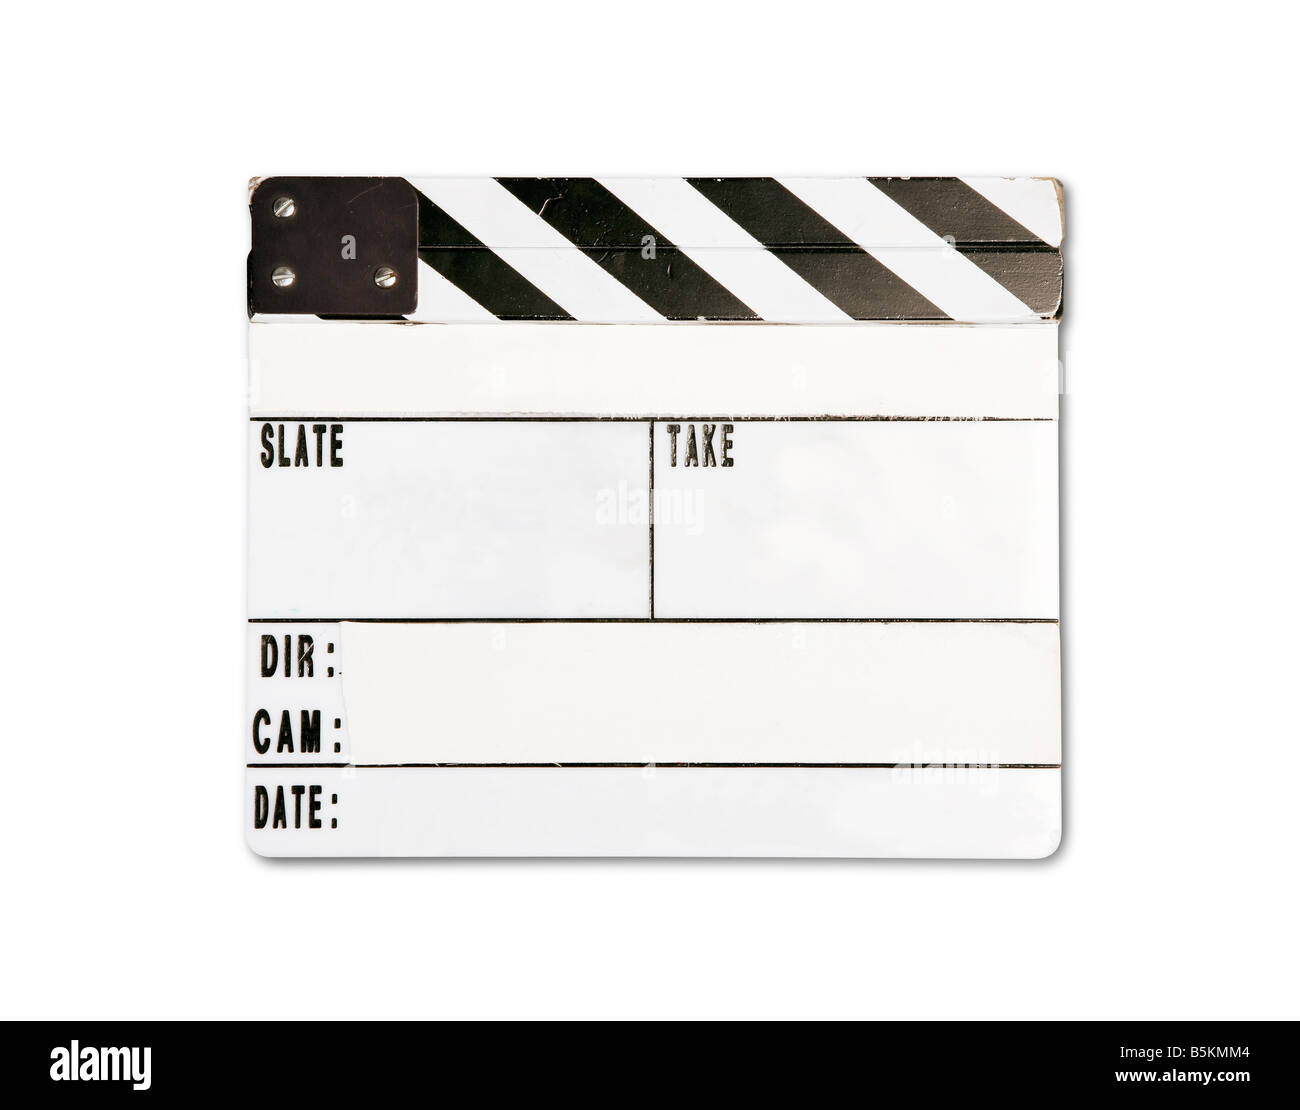 Real clap board with wear and tear isolated on white background - Stock Image